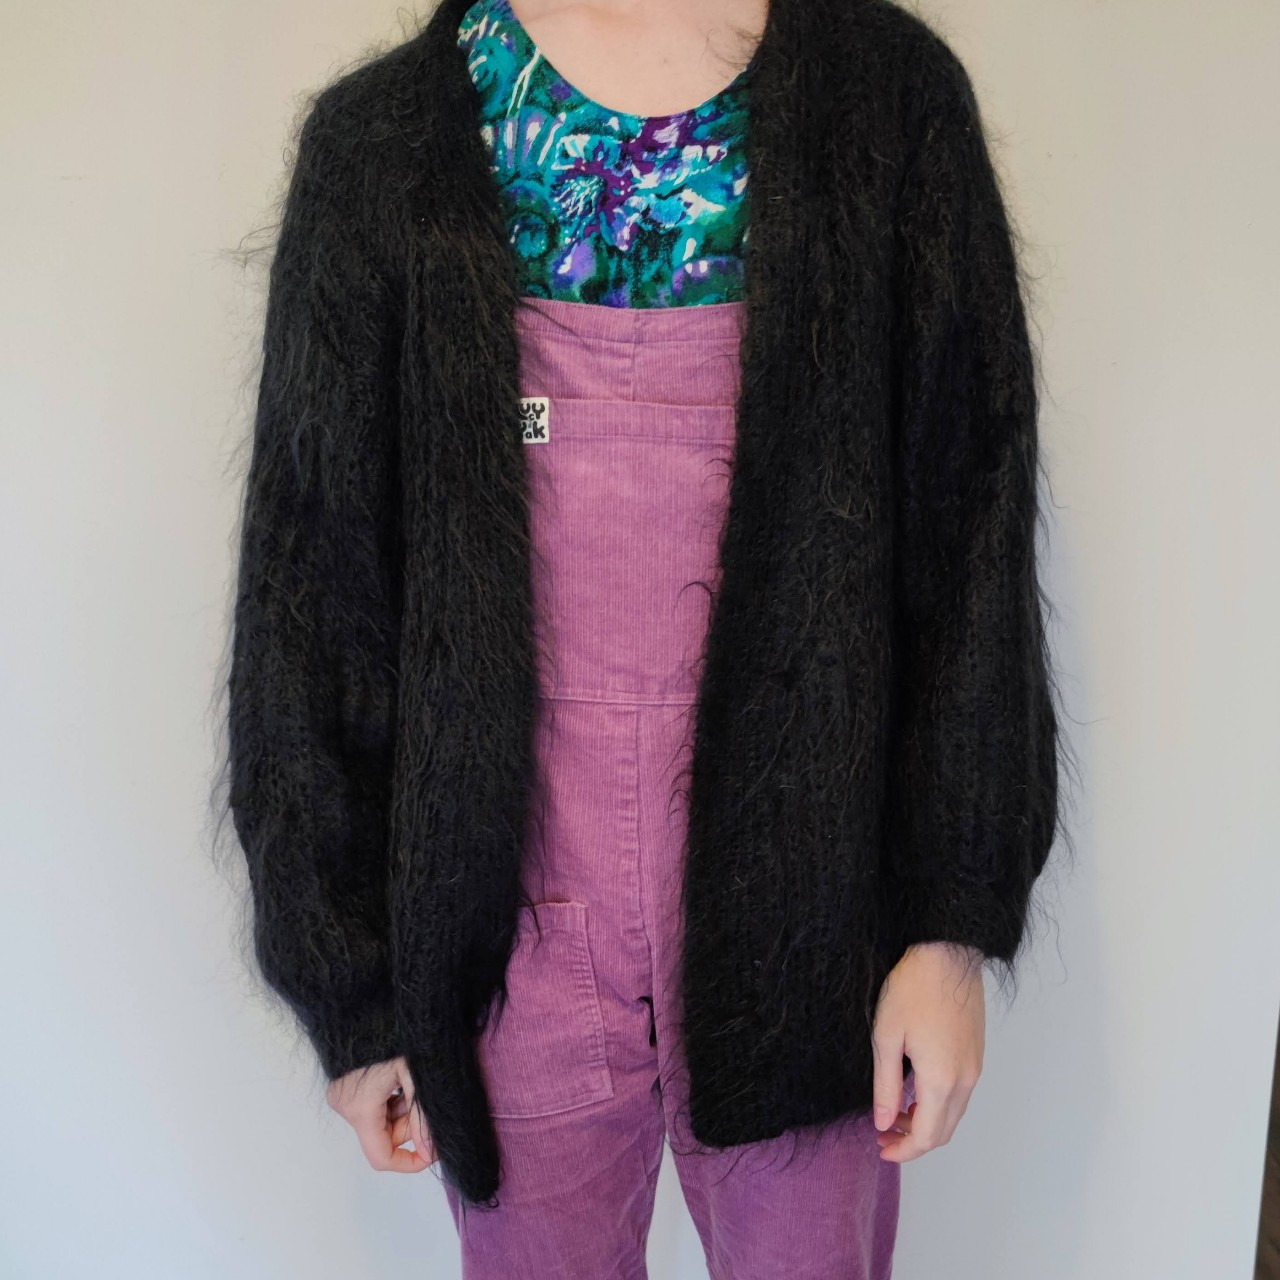 Product Image 1 - Vintage mohair knitted cardigan Worn oversized